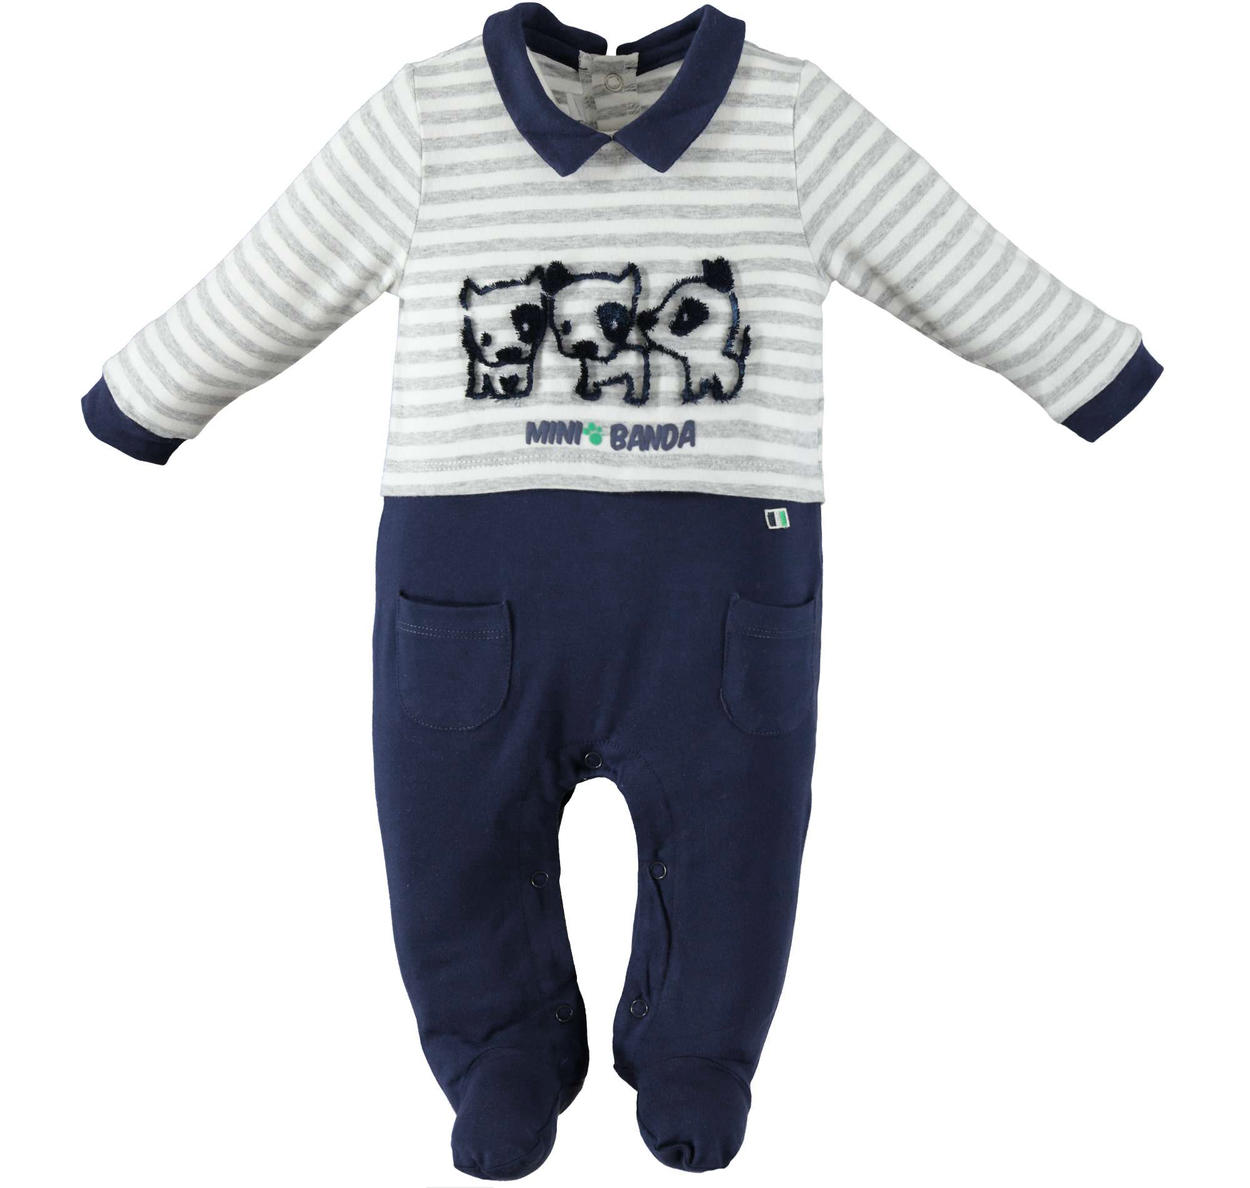 41ba419bf Baby boy romper 100% cotton with canines for newborn from 0 to 24 ...